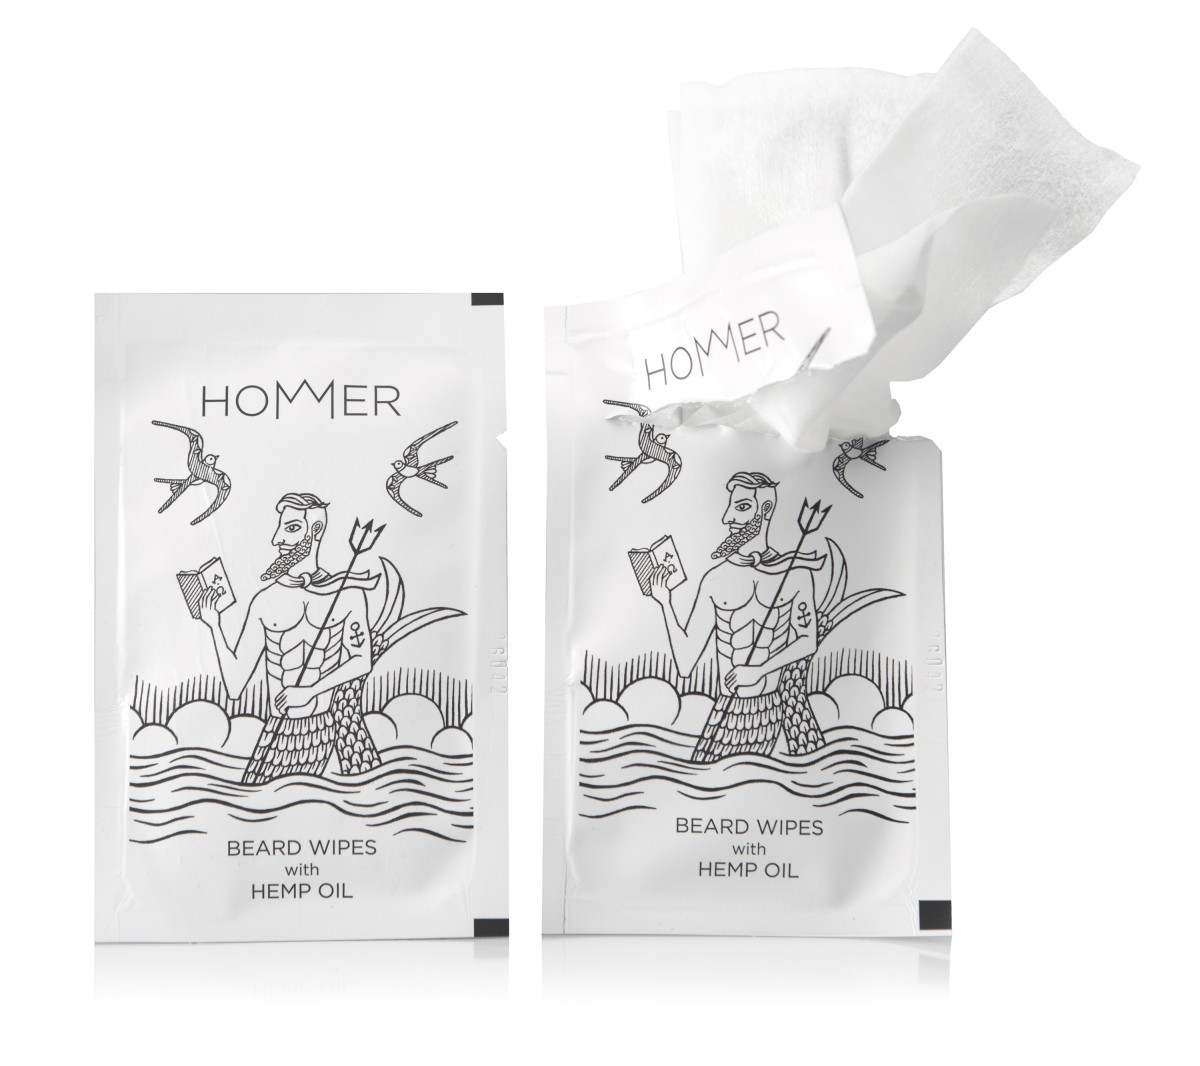 HOMMER_BEARD_WIPES_OPEN